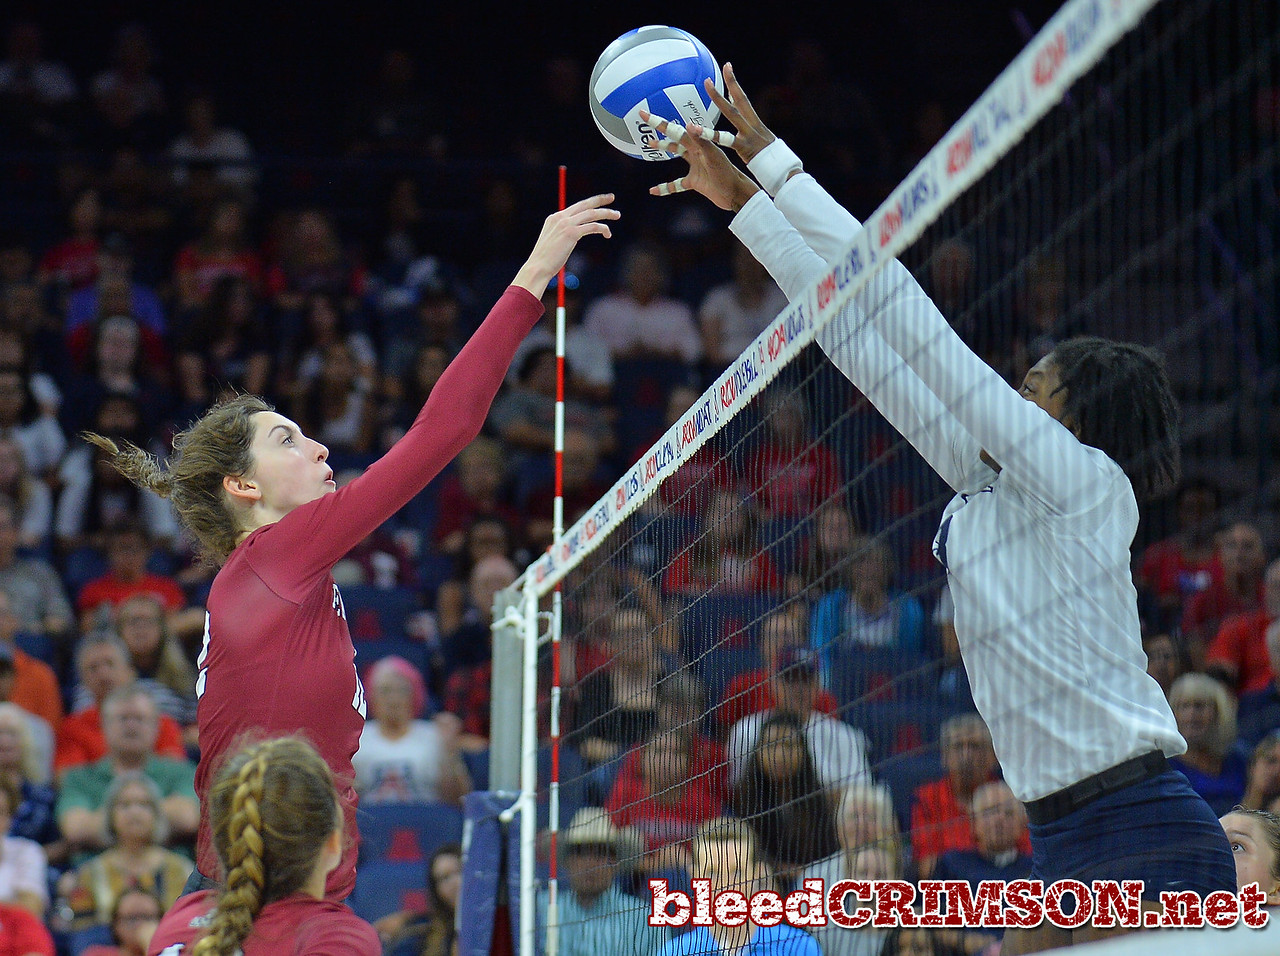 TUCSON, AZ - SEPTEMBER 15:  Megan Hart #12 of the New Mexico State Aggies sends a ball past the block in a match between the New Mexico State Aggies and the Arizona Wildcats at the McKale Center in Tucson, Arizona. The Wildcats won 3-2.  (Photo by Sam Wasson)